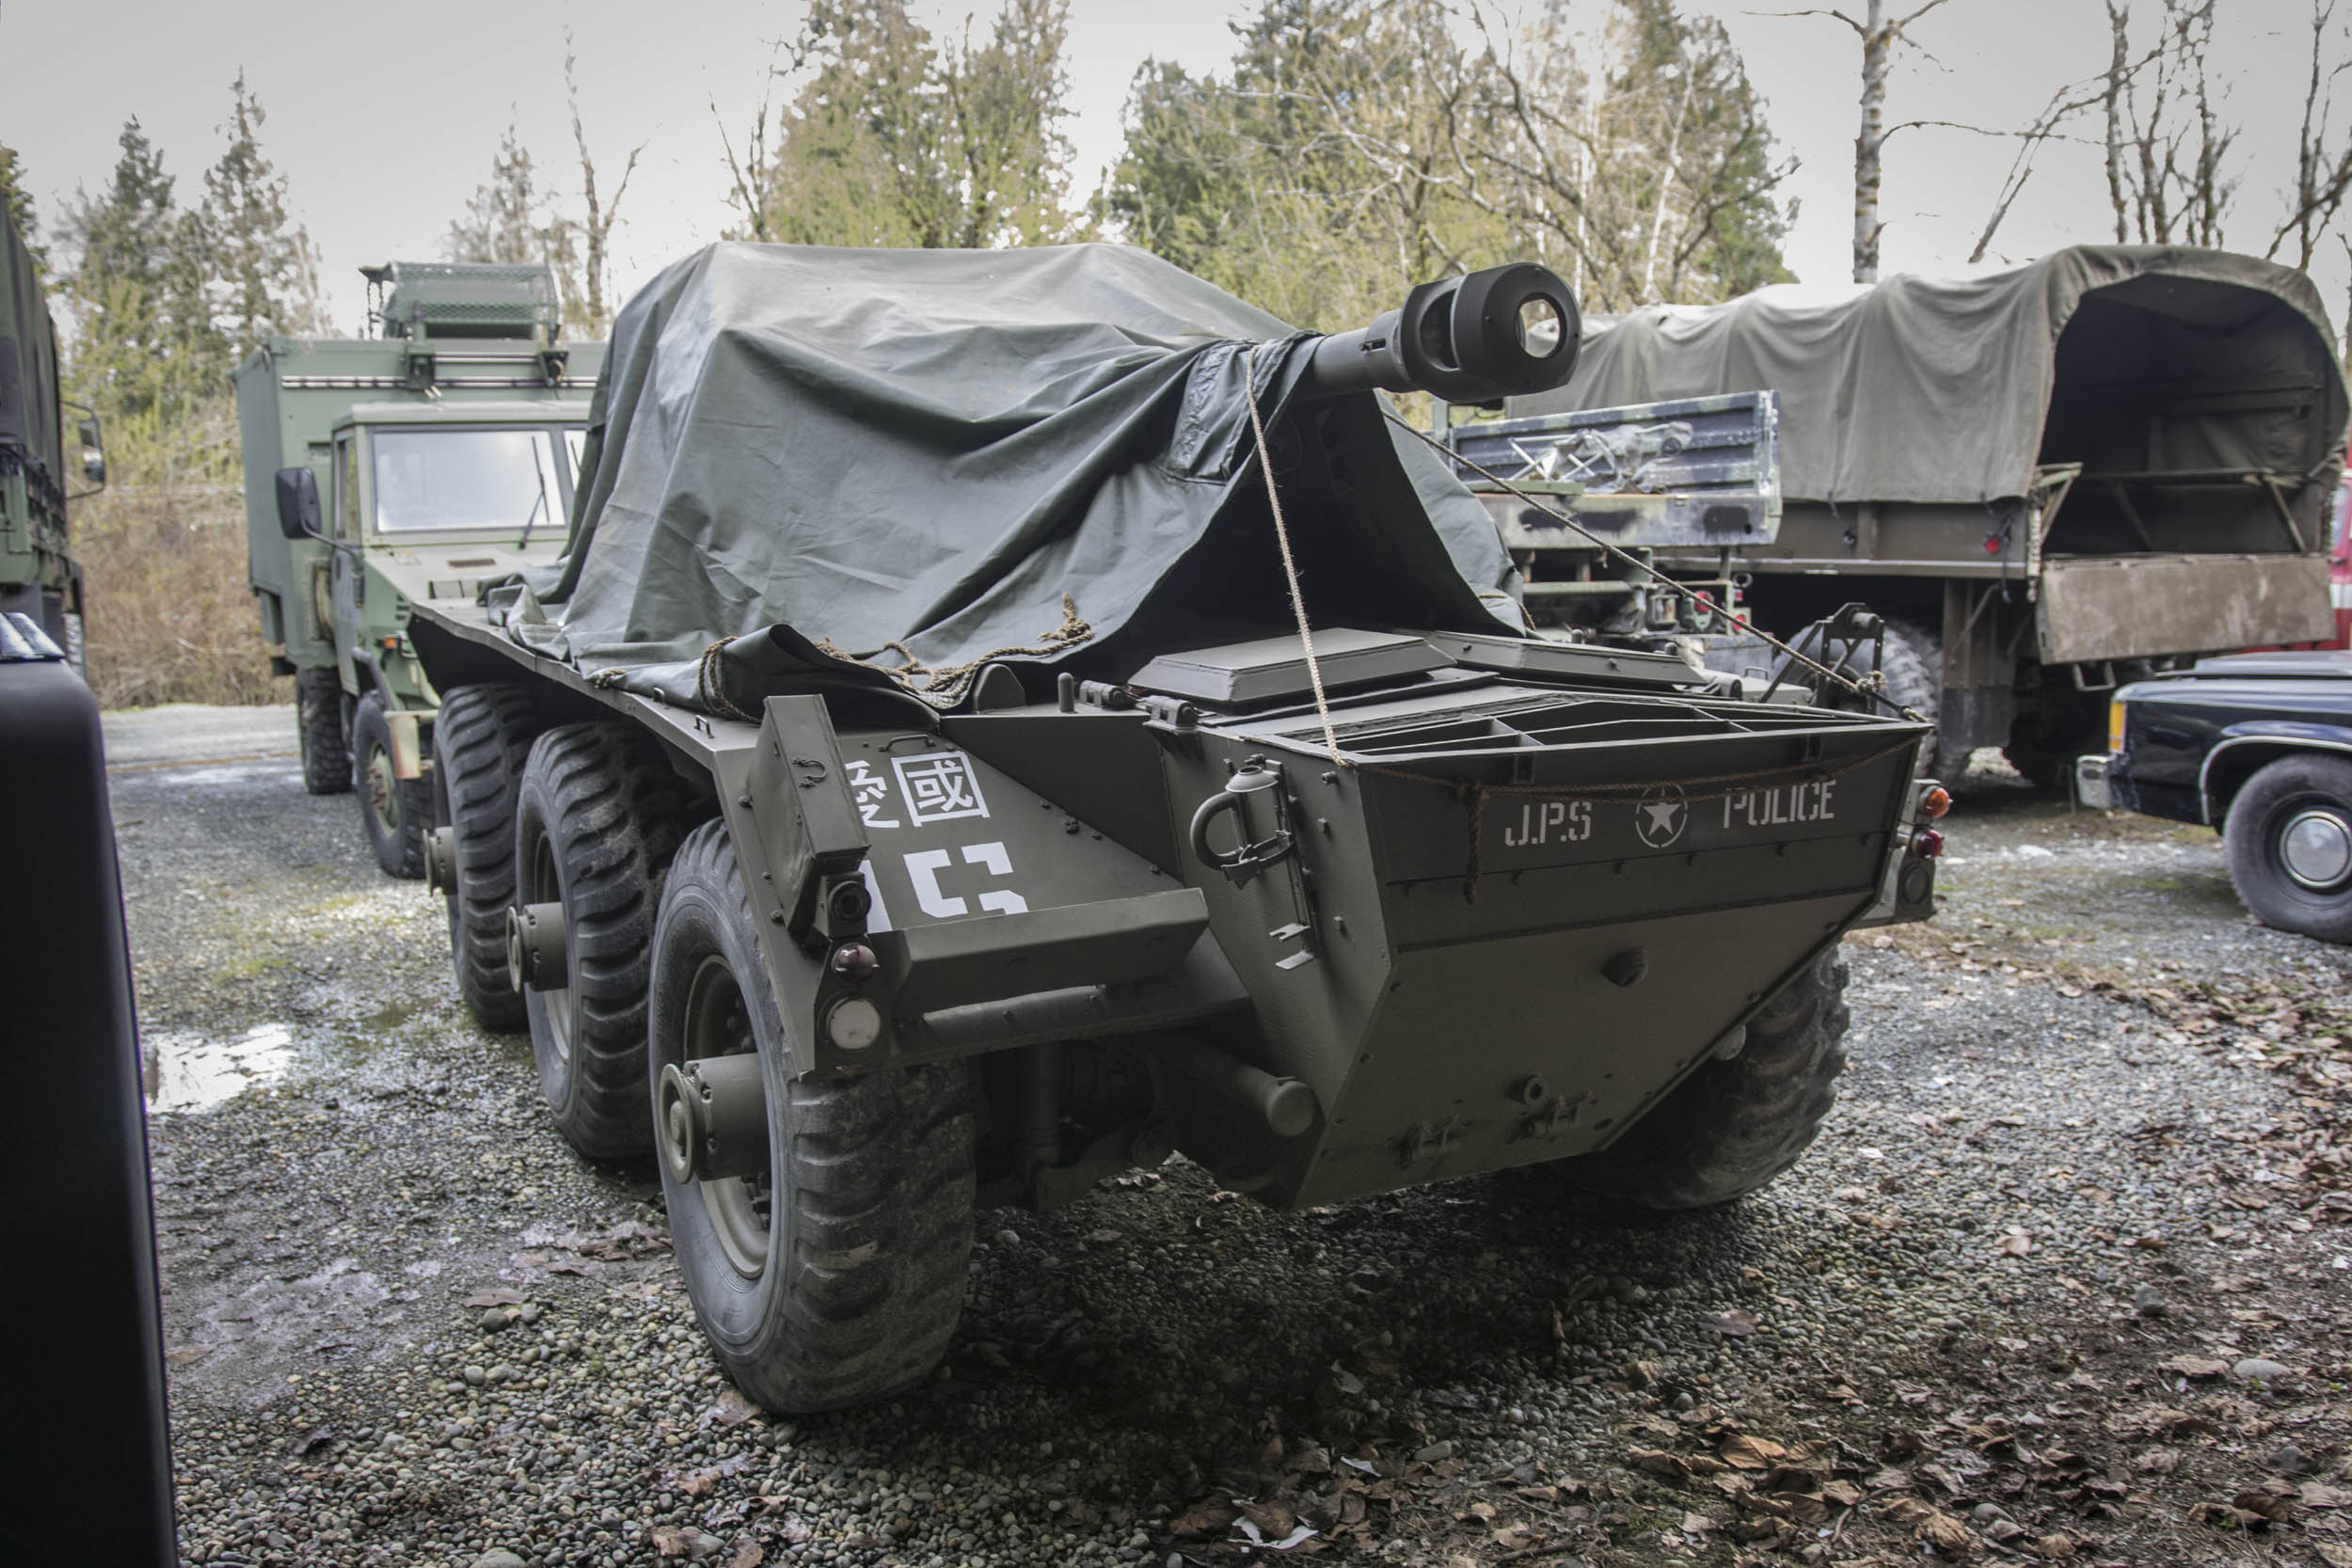 Covered by a tarp, this 6x6 armored car is another cast member of The Man in the High Castle.